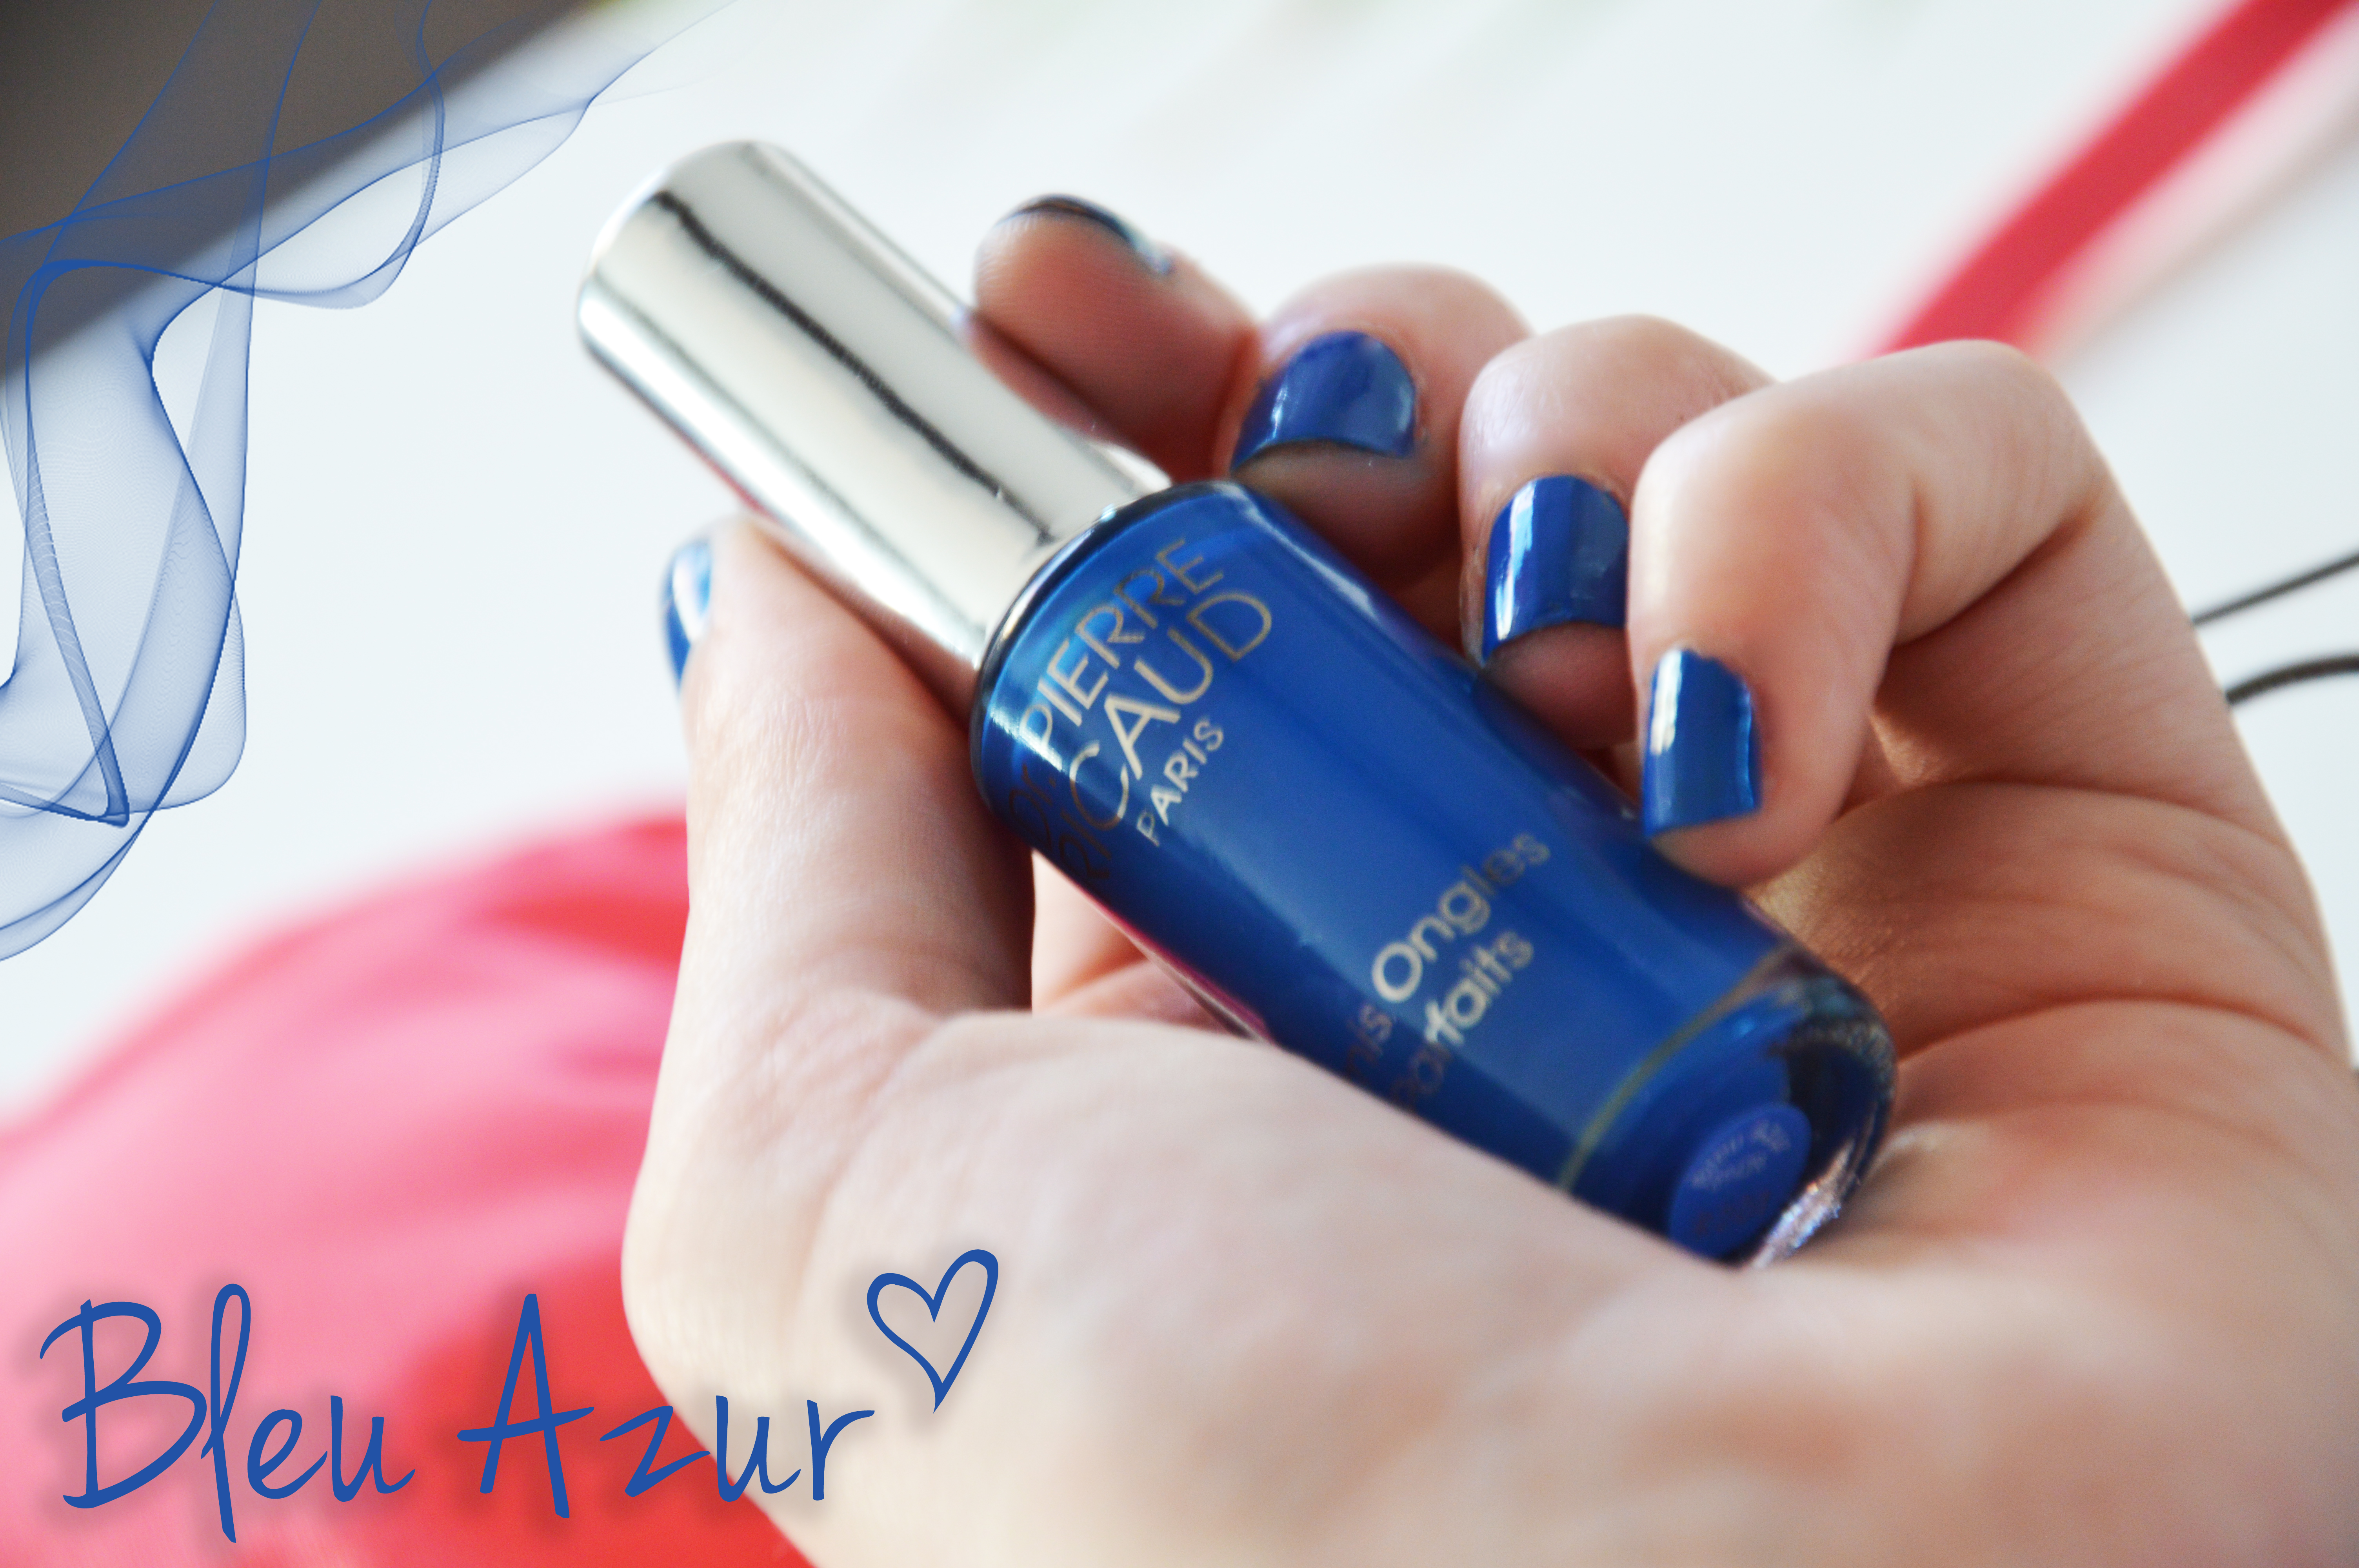 ALITTLEB_BLOG_BEAUTE_COLLECTION_UN_AIR_D_ETE_DR_PIERRE_RICAUD_BLEU_AZUR_VERNIS